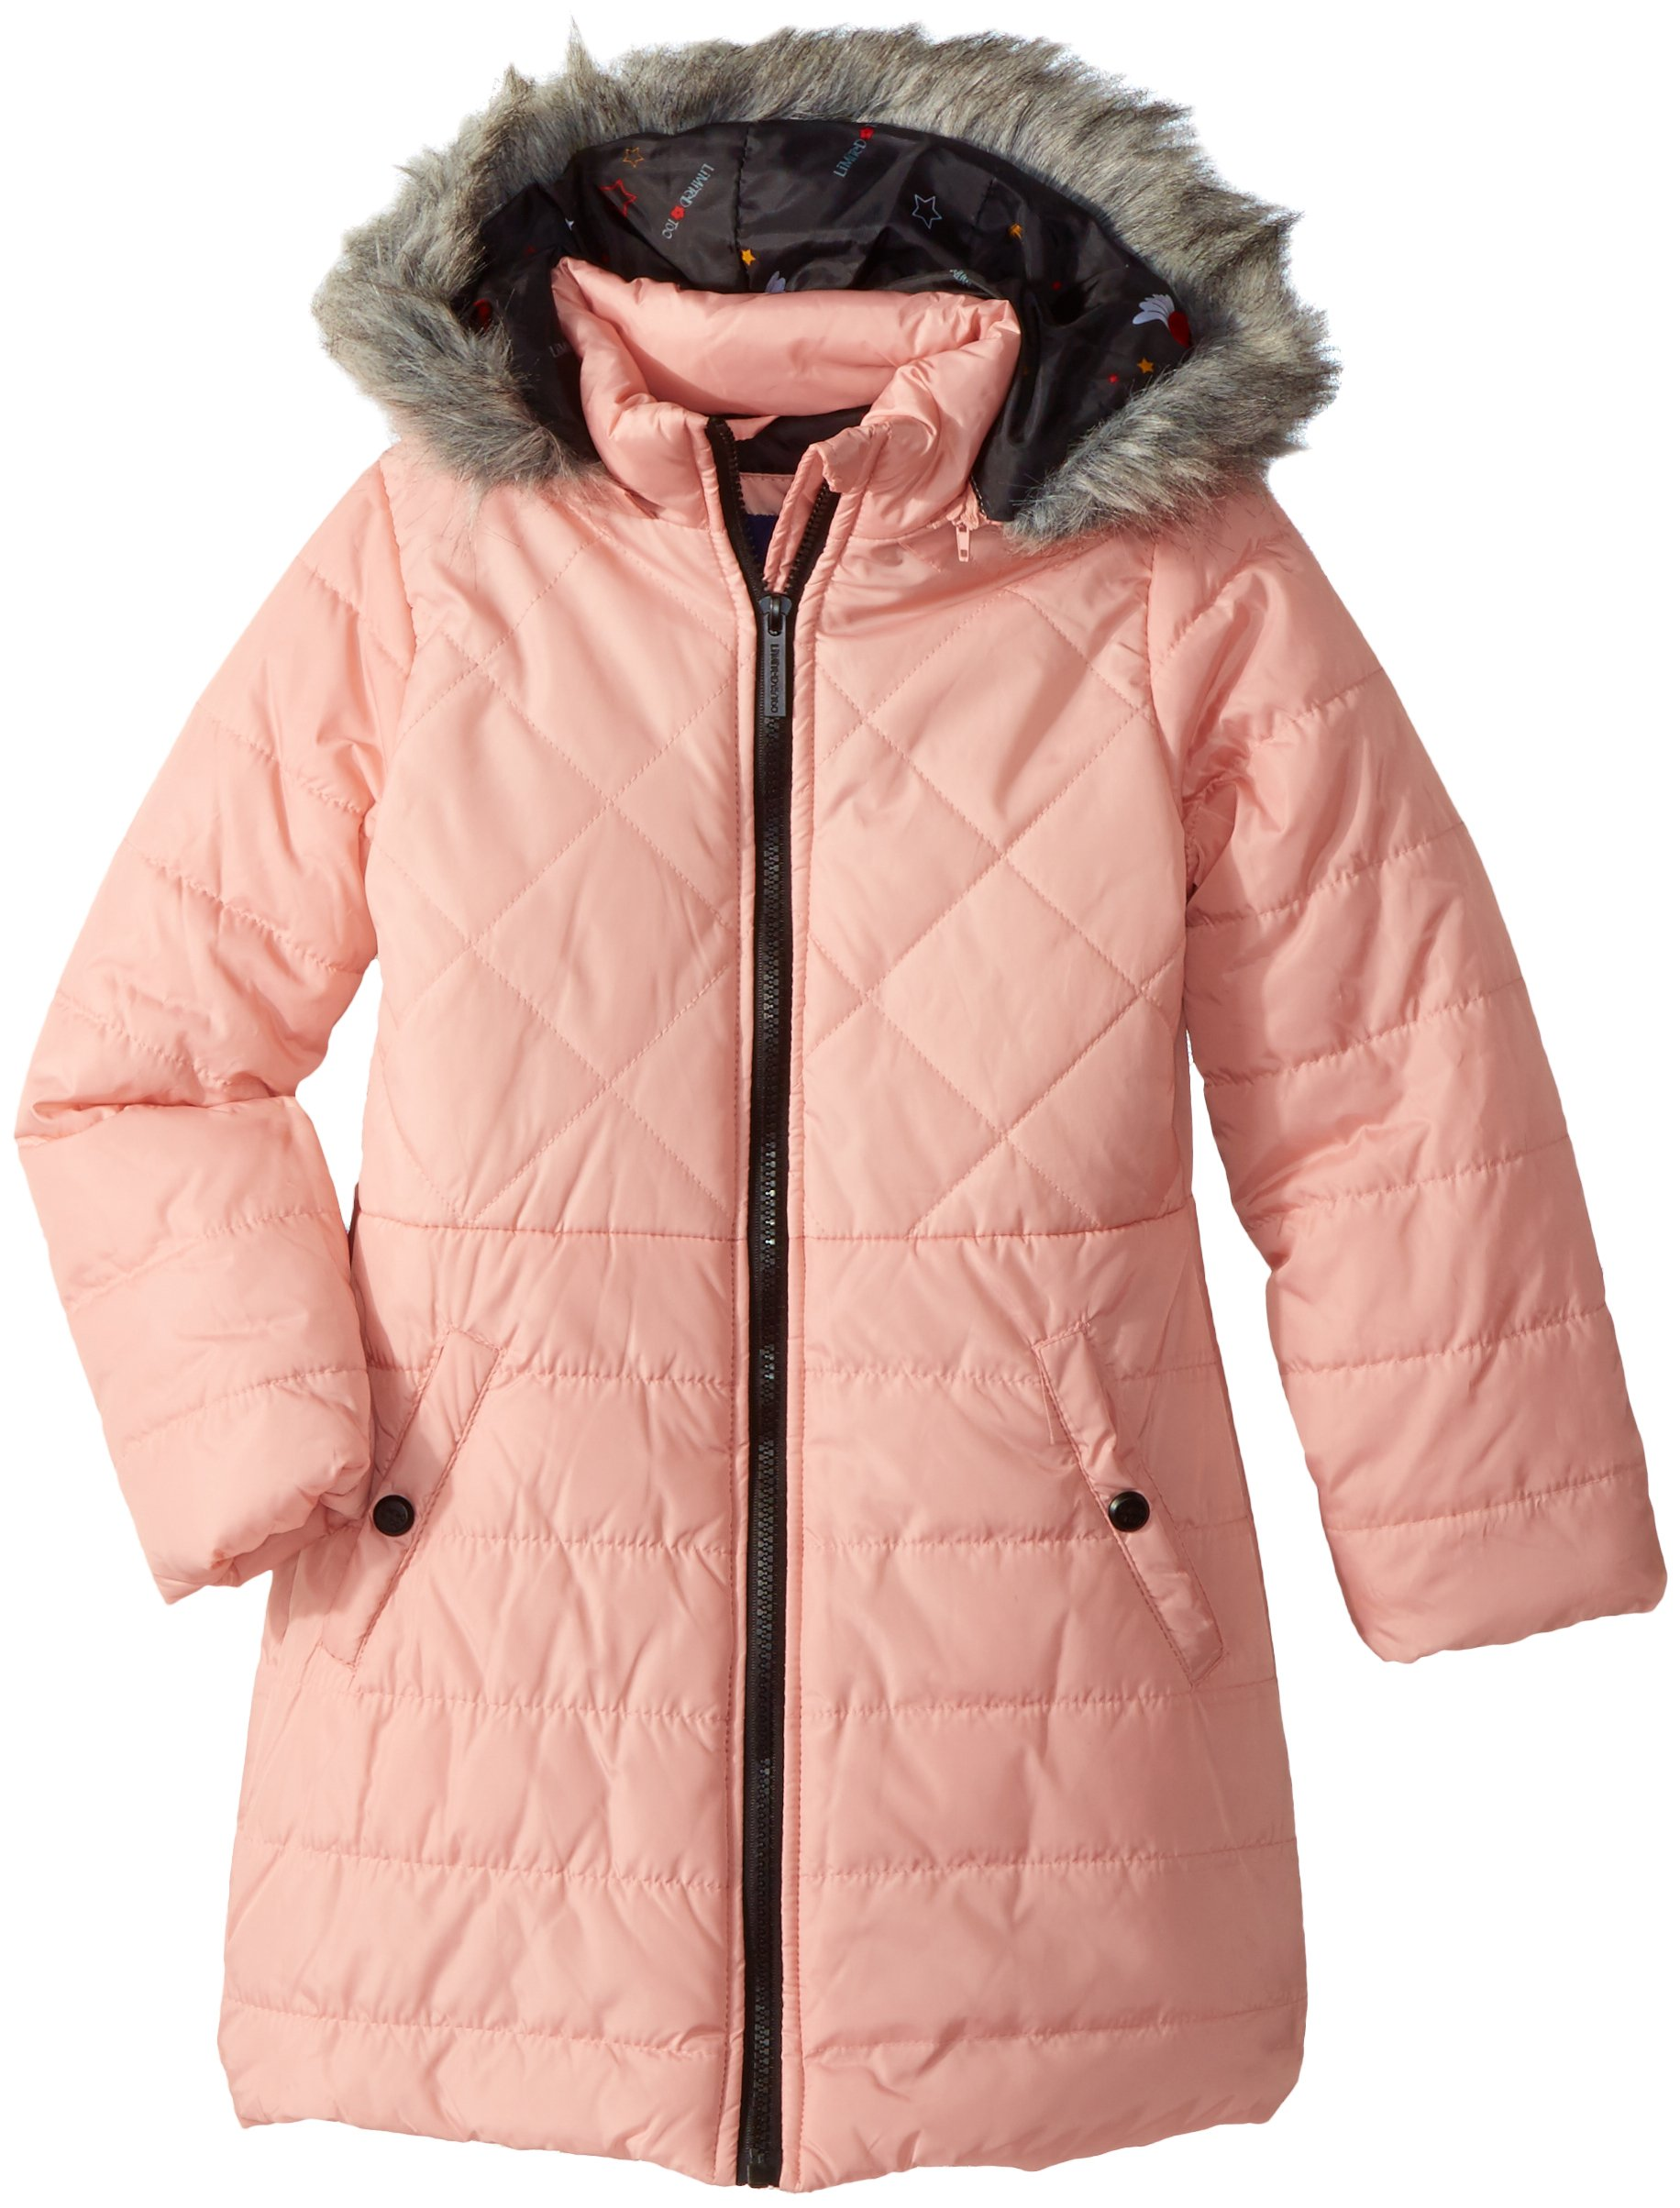 LiMiTeD Too Little Girls' Too Multi Quilted Long Puffer Coat W/Printed, Blush, 4 by Limited Too (Image #1)